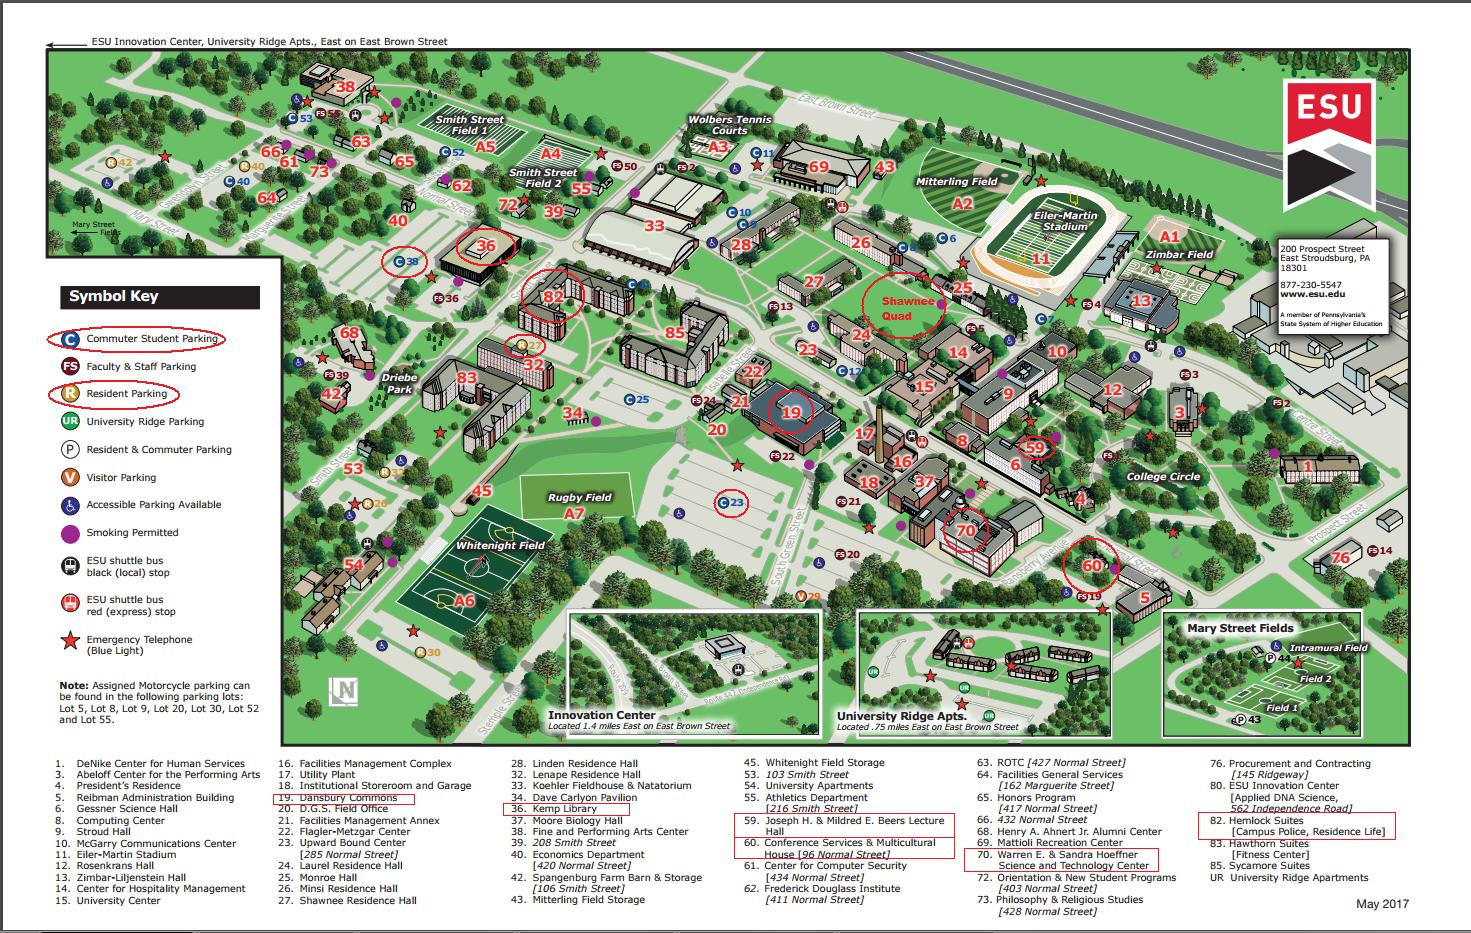 East Stroudsburg University Campus Map Image Gallery HCPR